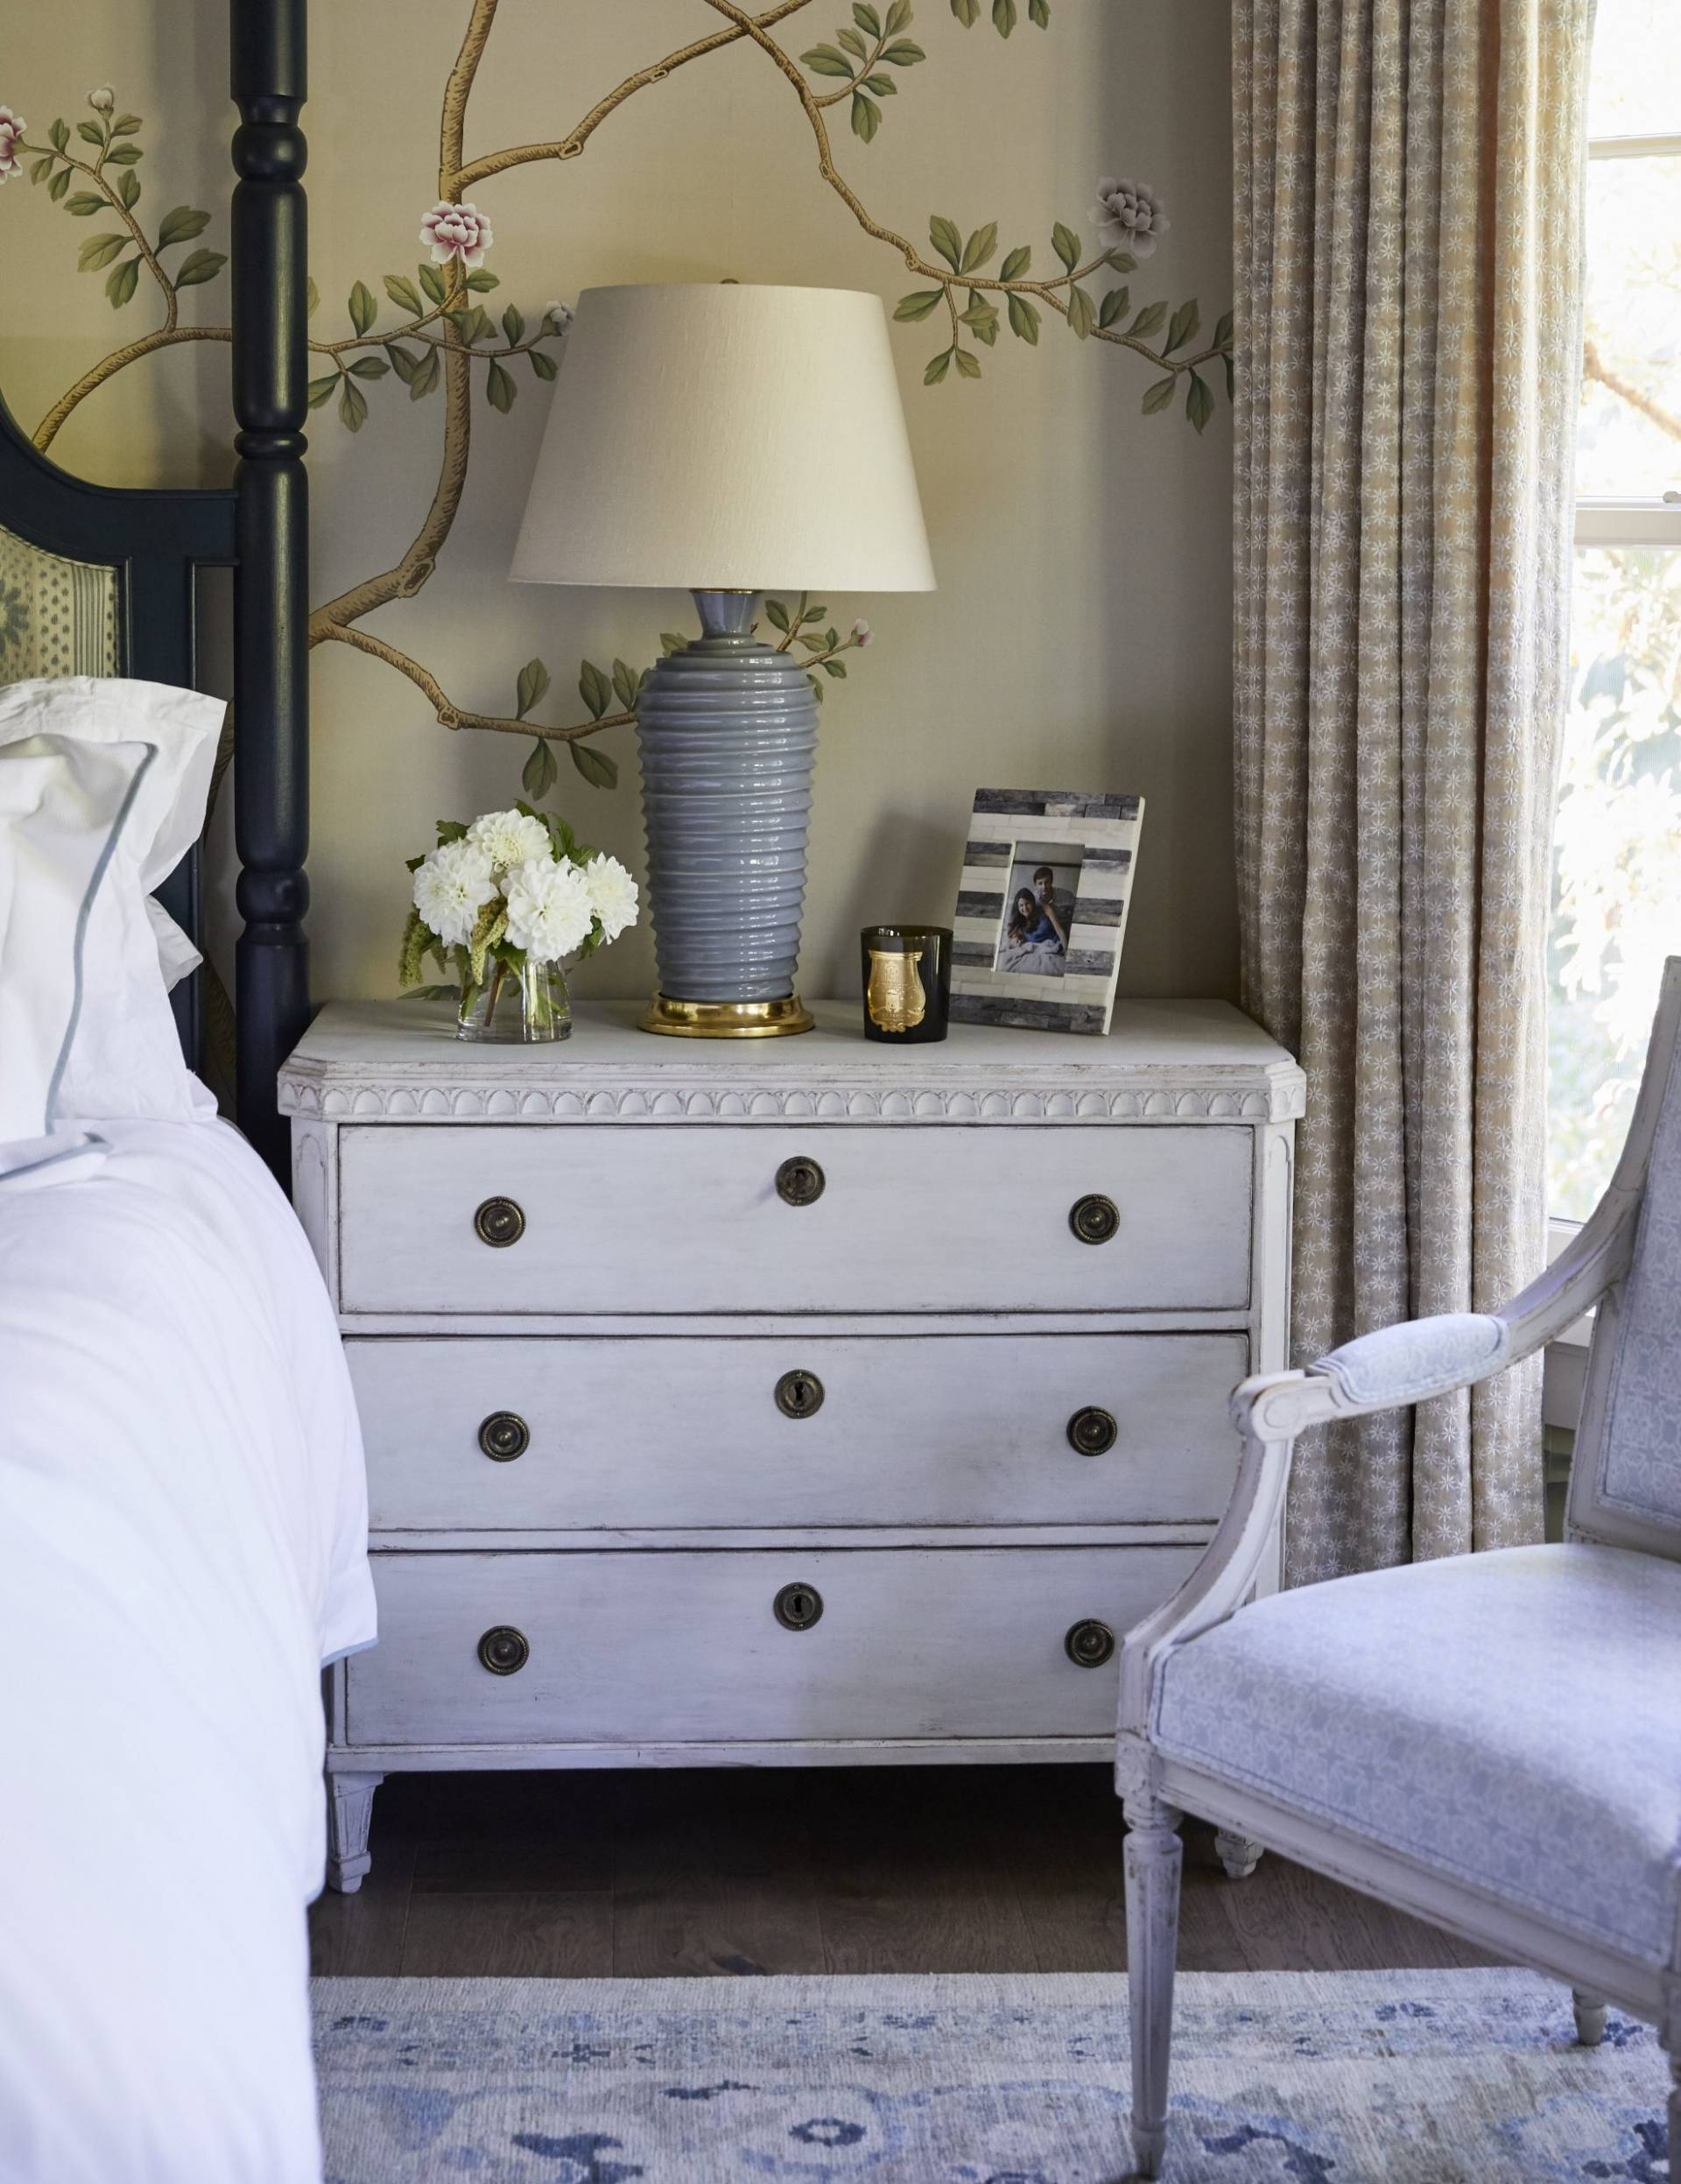 Bedroom armchair and patterned drapery against wallpaper